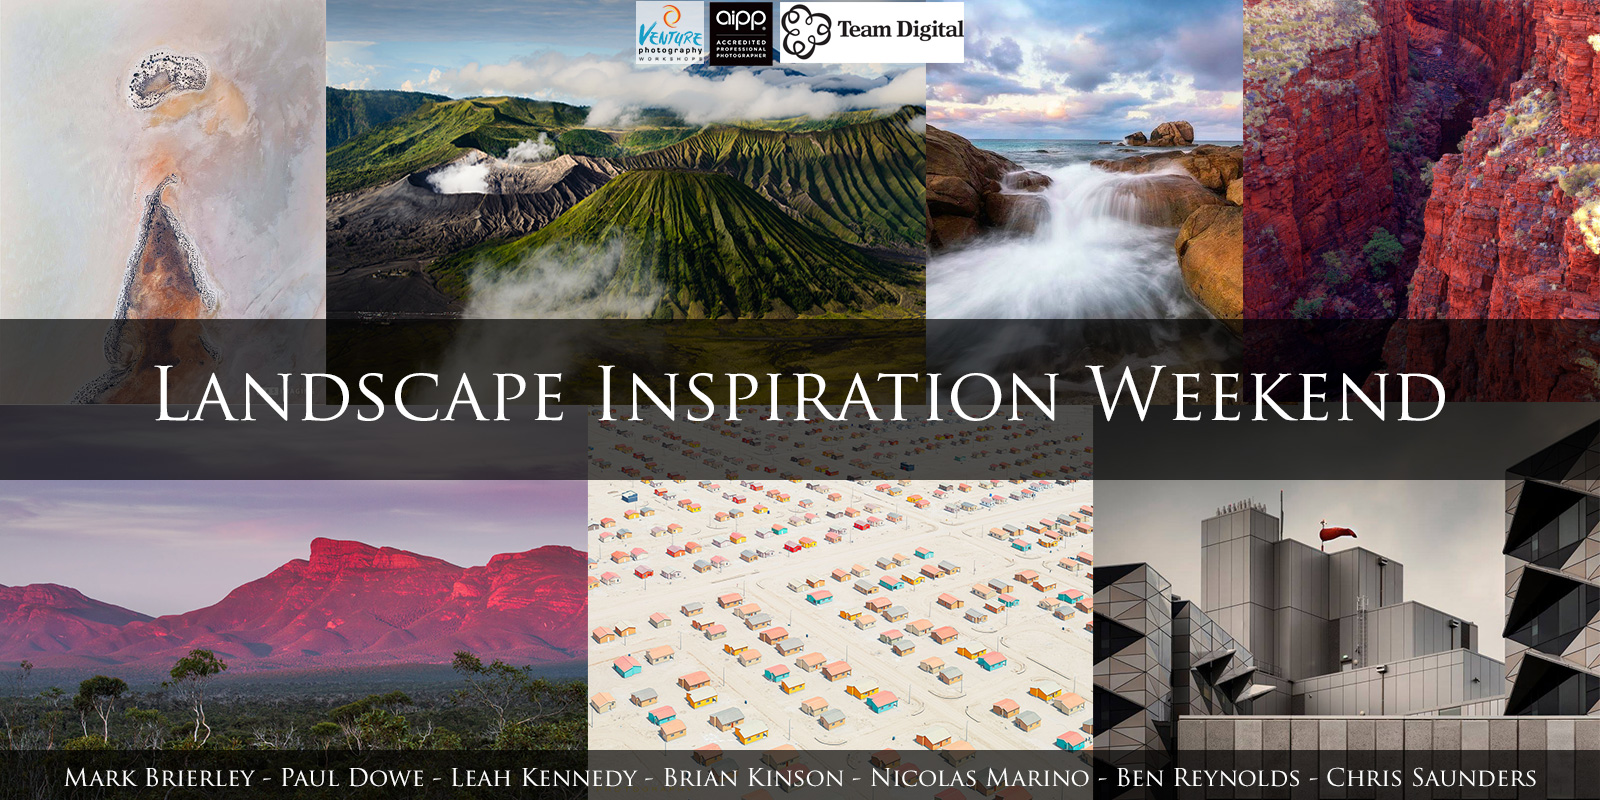 Landscape Inspiration Weekend